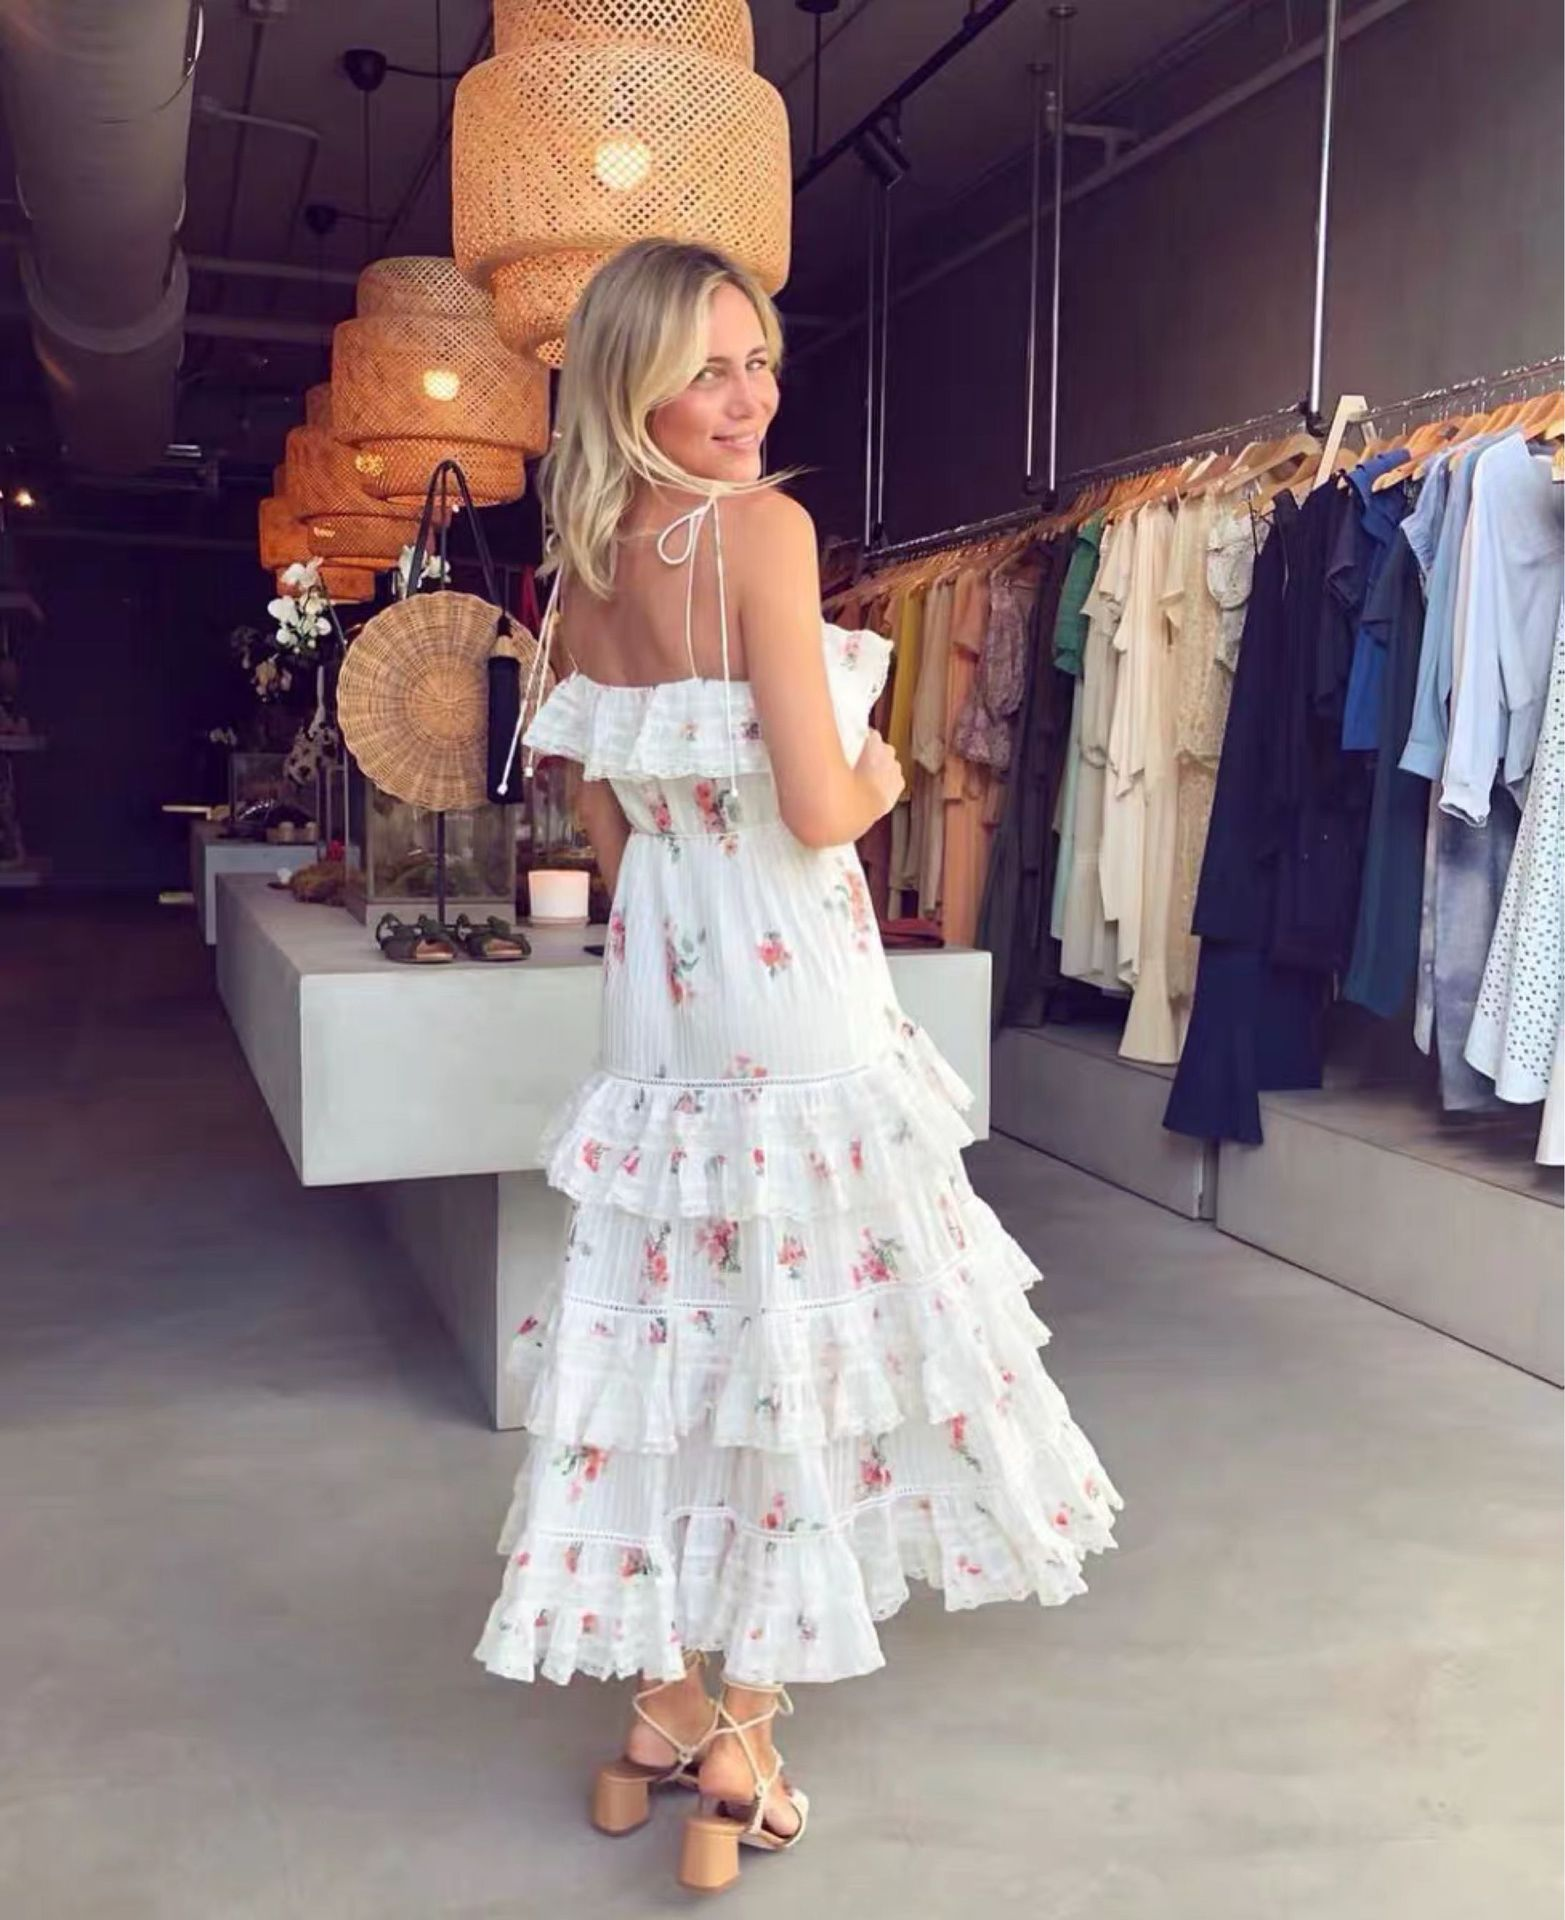 Cuerly High Quality 2019 summer women Spaghetti Strap dress Fashion Print Runway Lace Ruffles cake Strapless sleeveless dresses in Dresses from Women 39 s Clothing